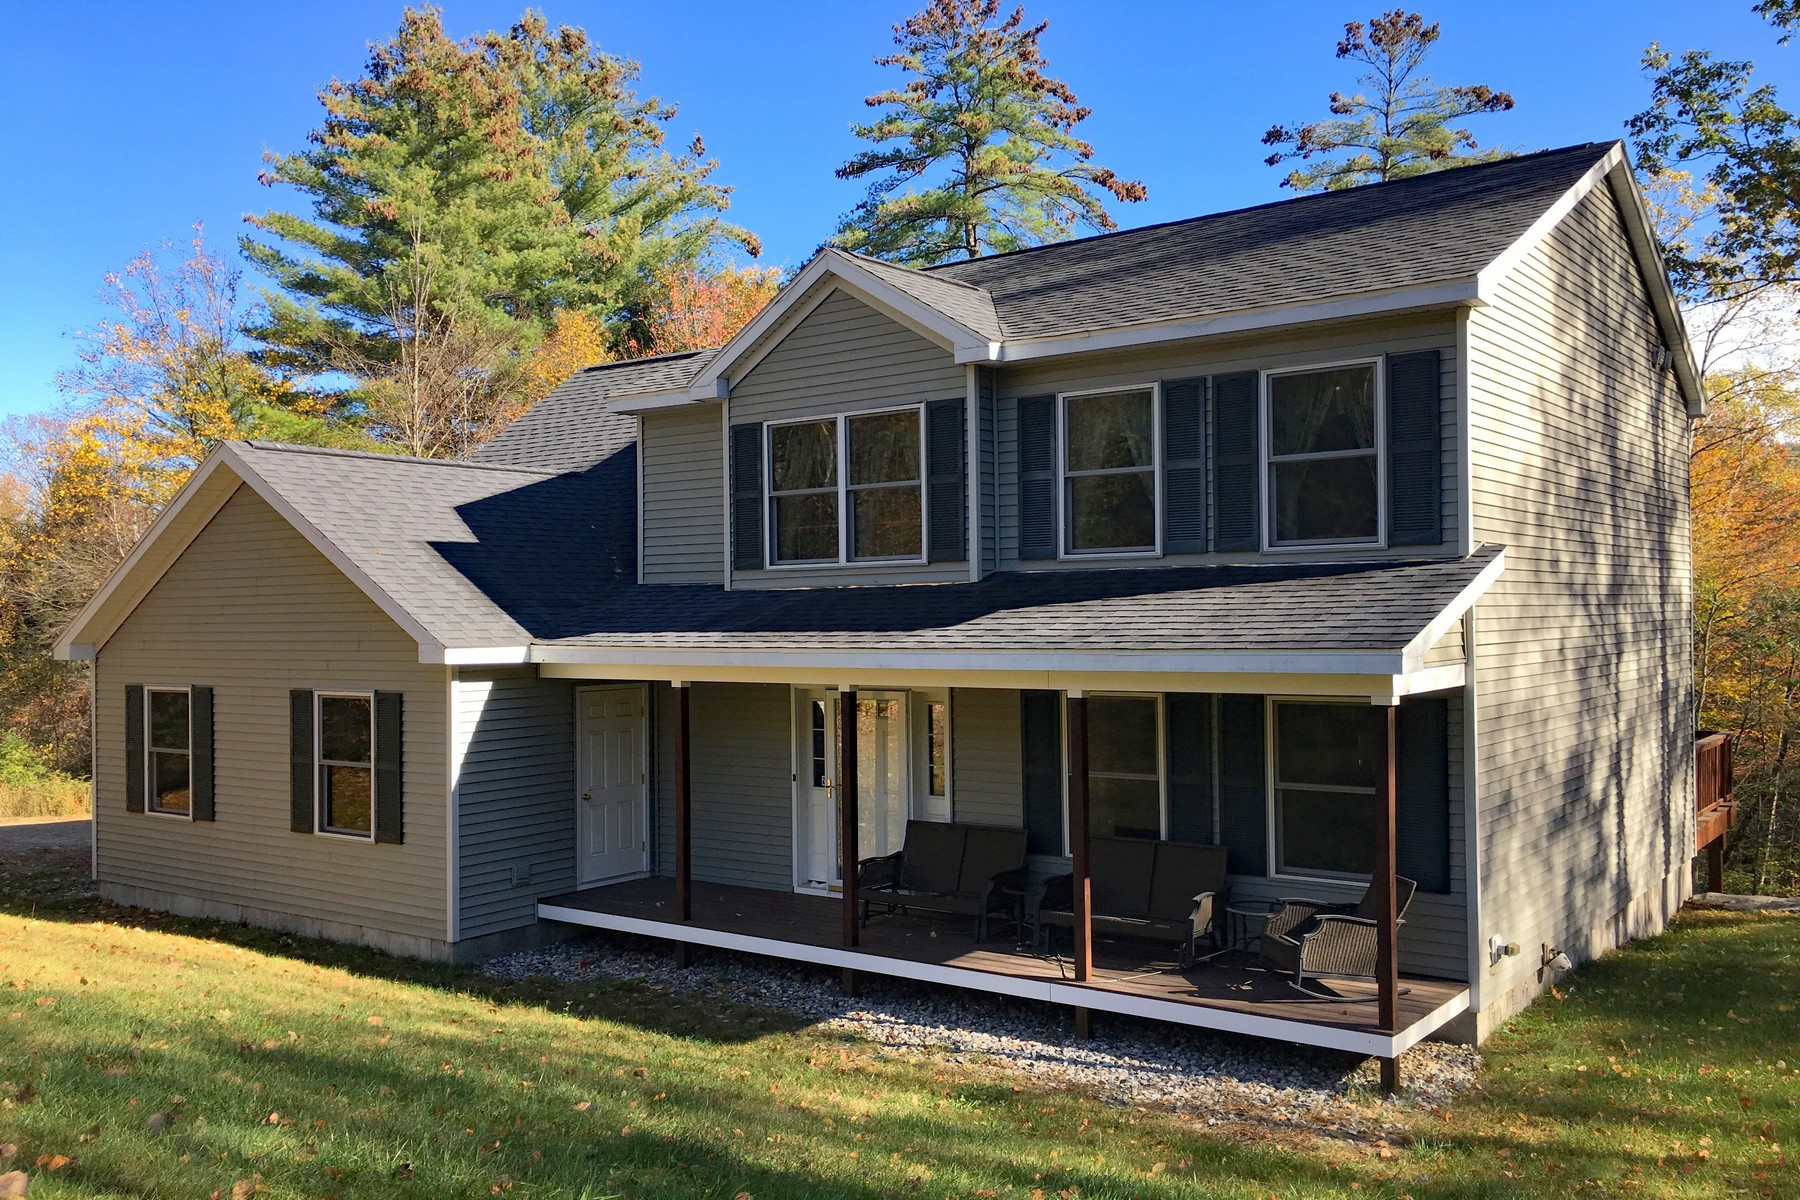 Single Family Home for Sale at Immaculately Maintained Colonial 301 Remington Chester, Vermont 05143 United States